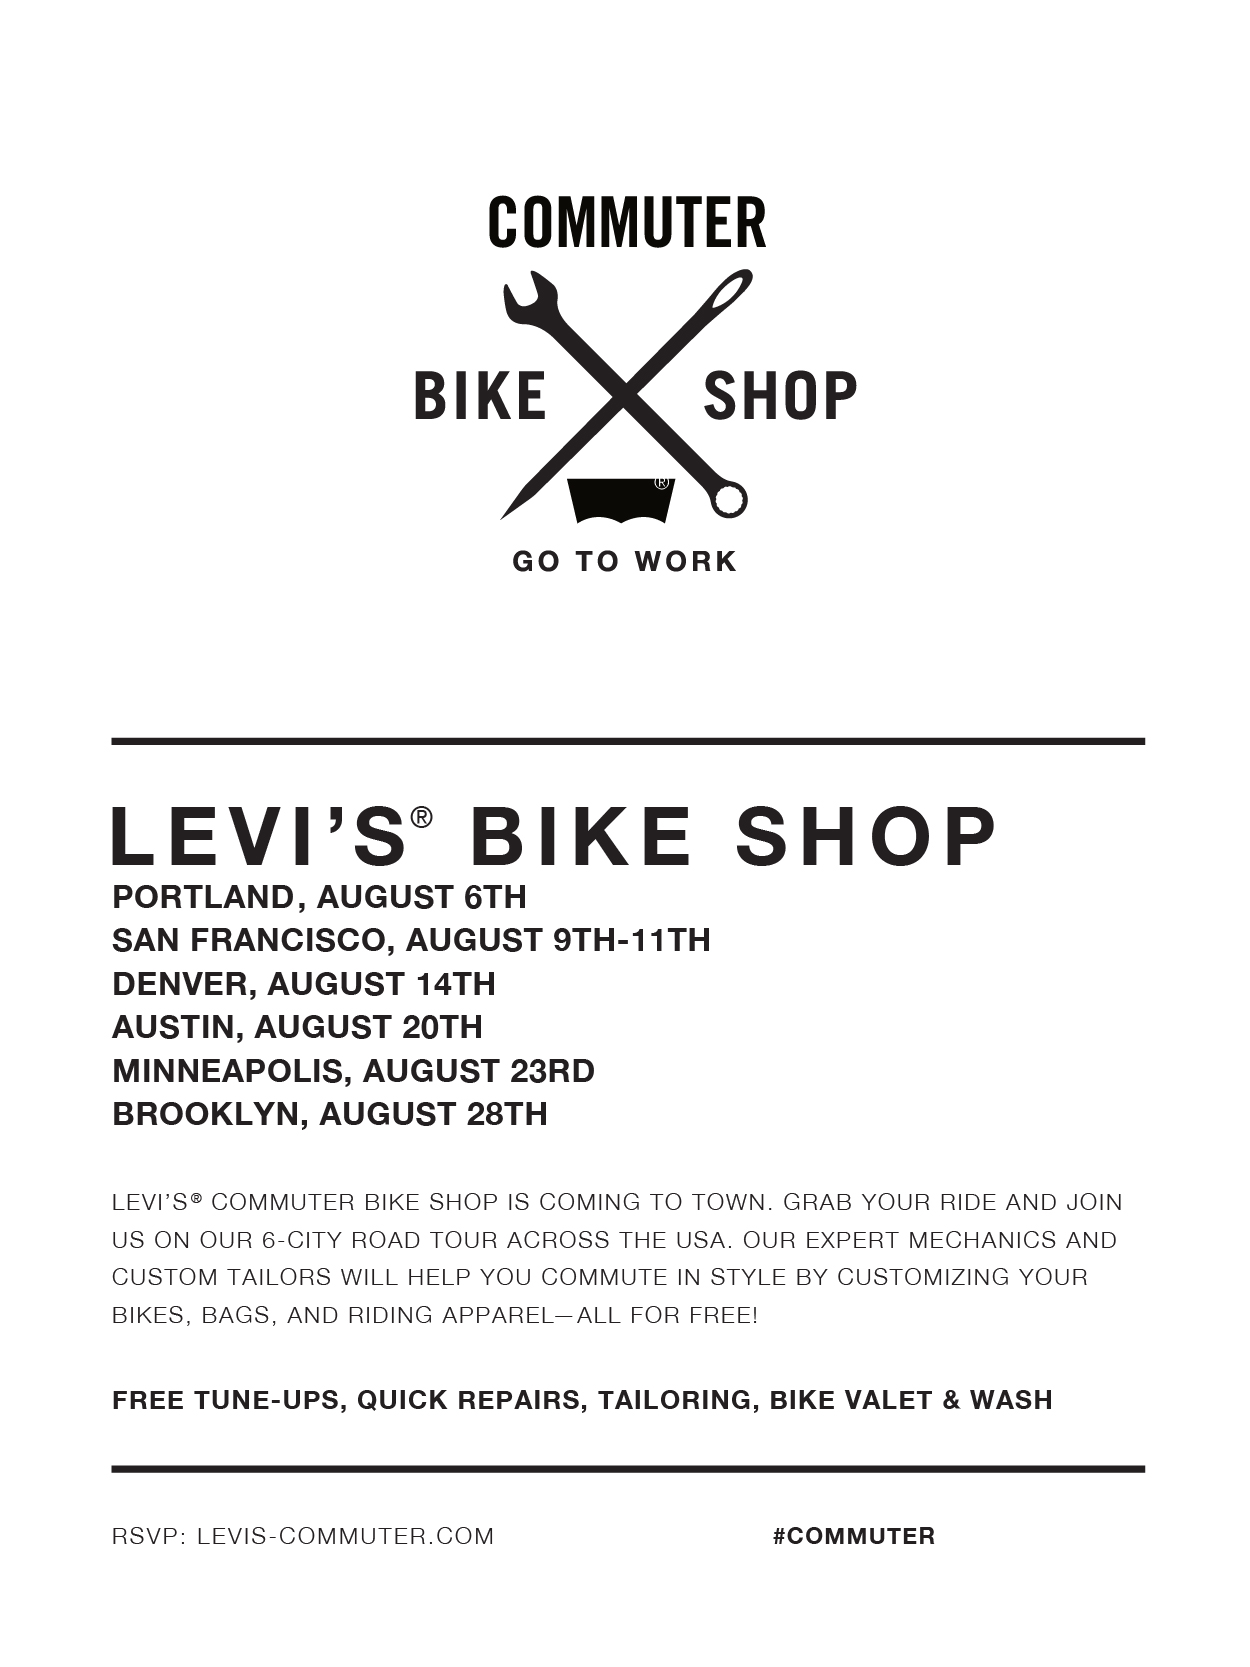 Levi's Bike Shop Tour Cities